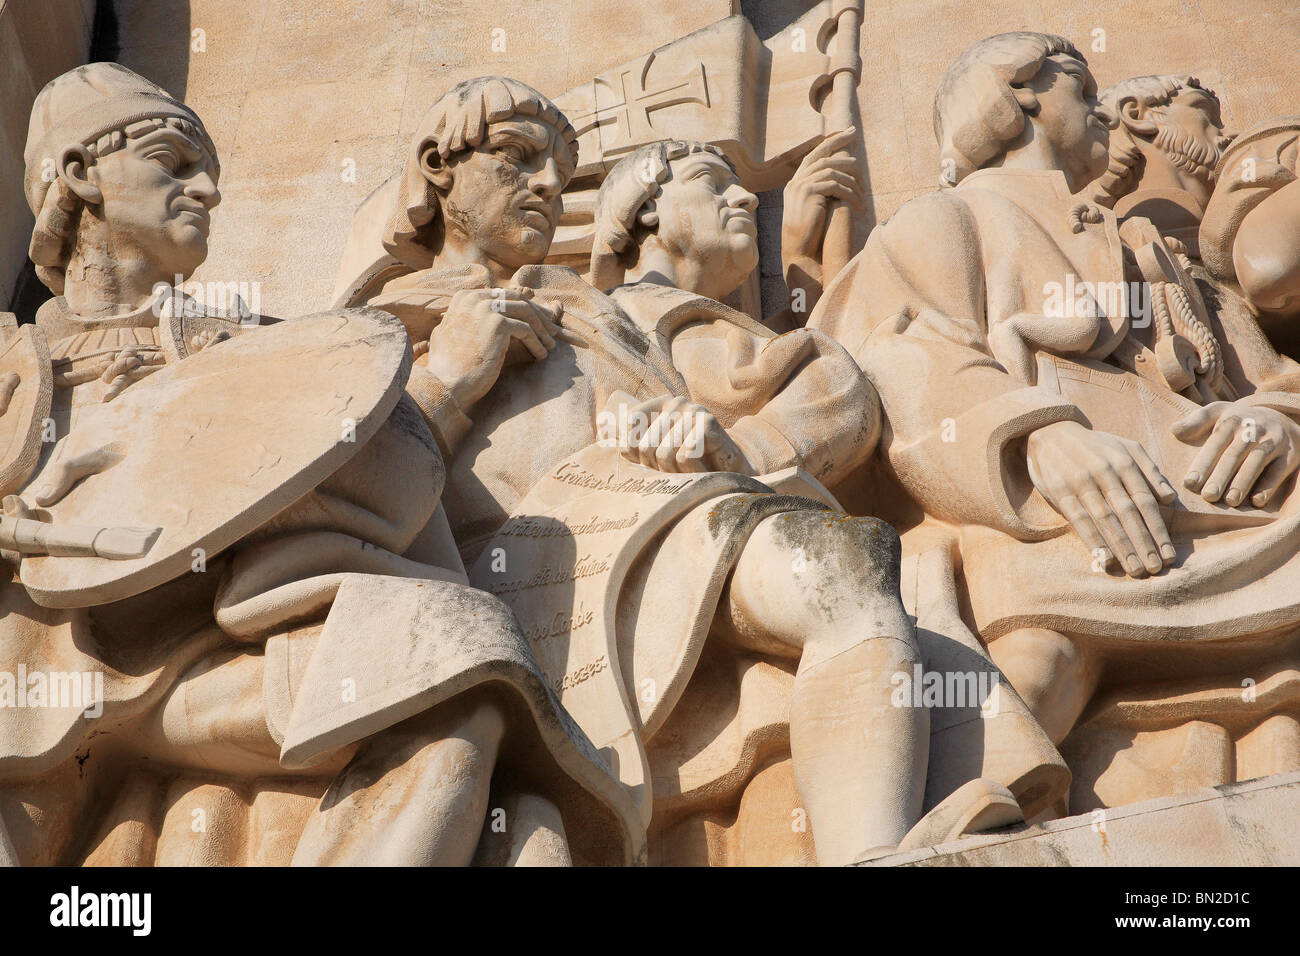 Detail from the Monument to the Discoveries, Lisbon, Portugal - Stock Image